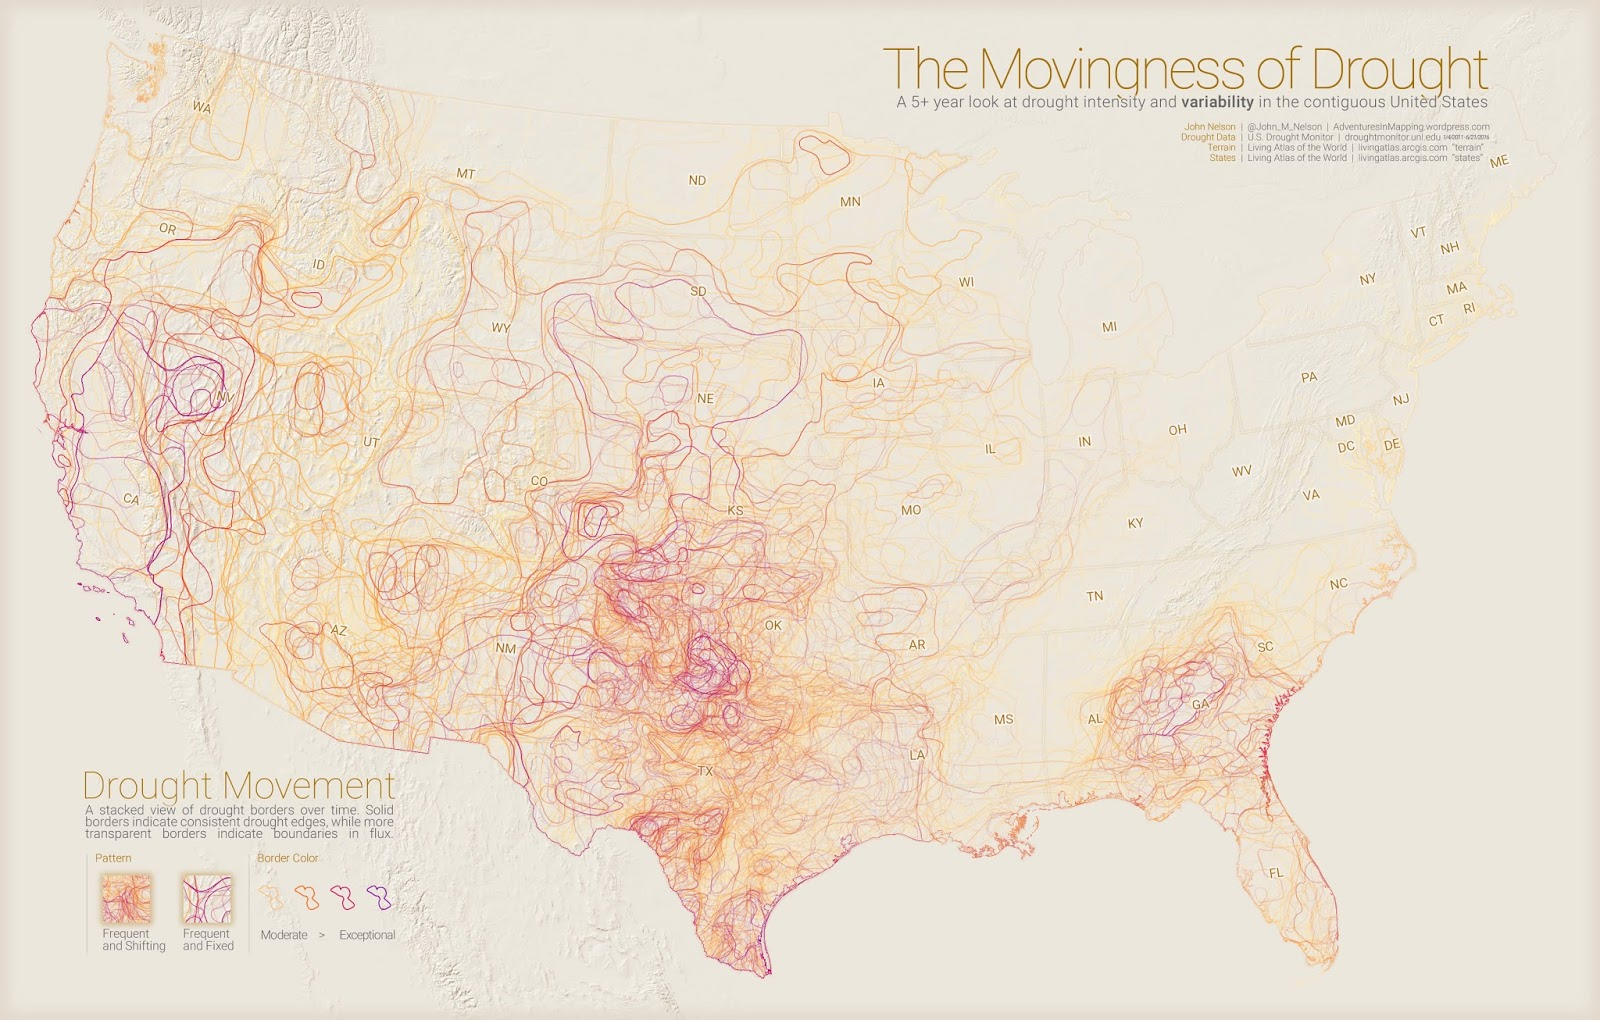 The movingness of drought